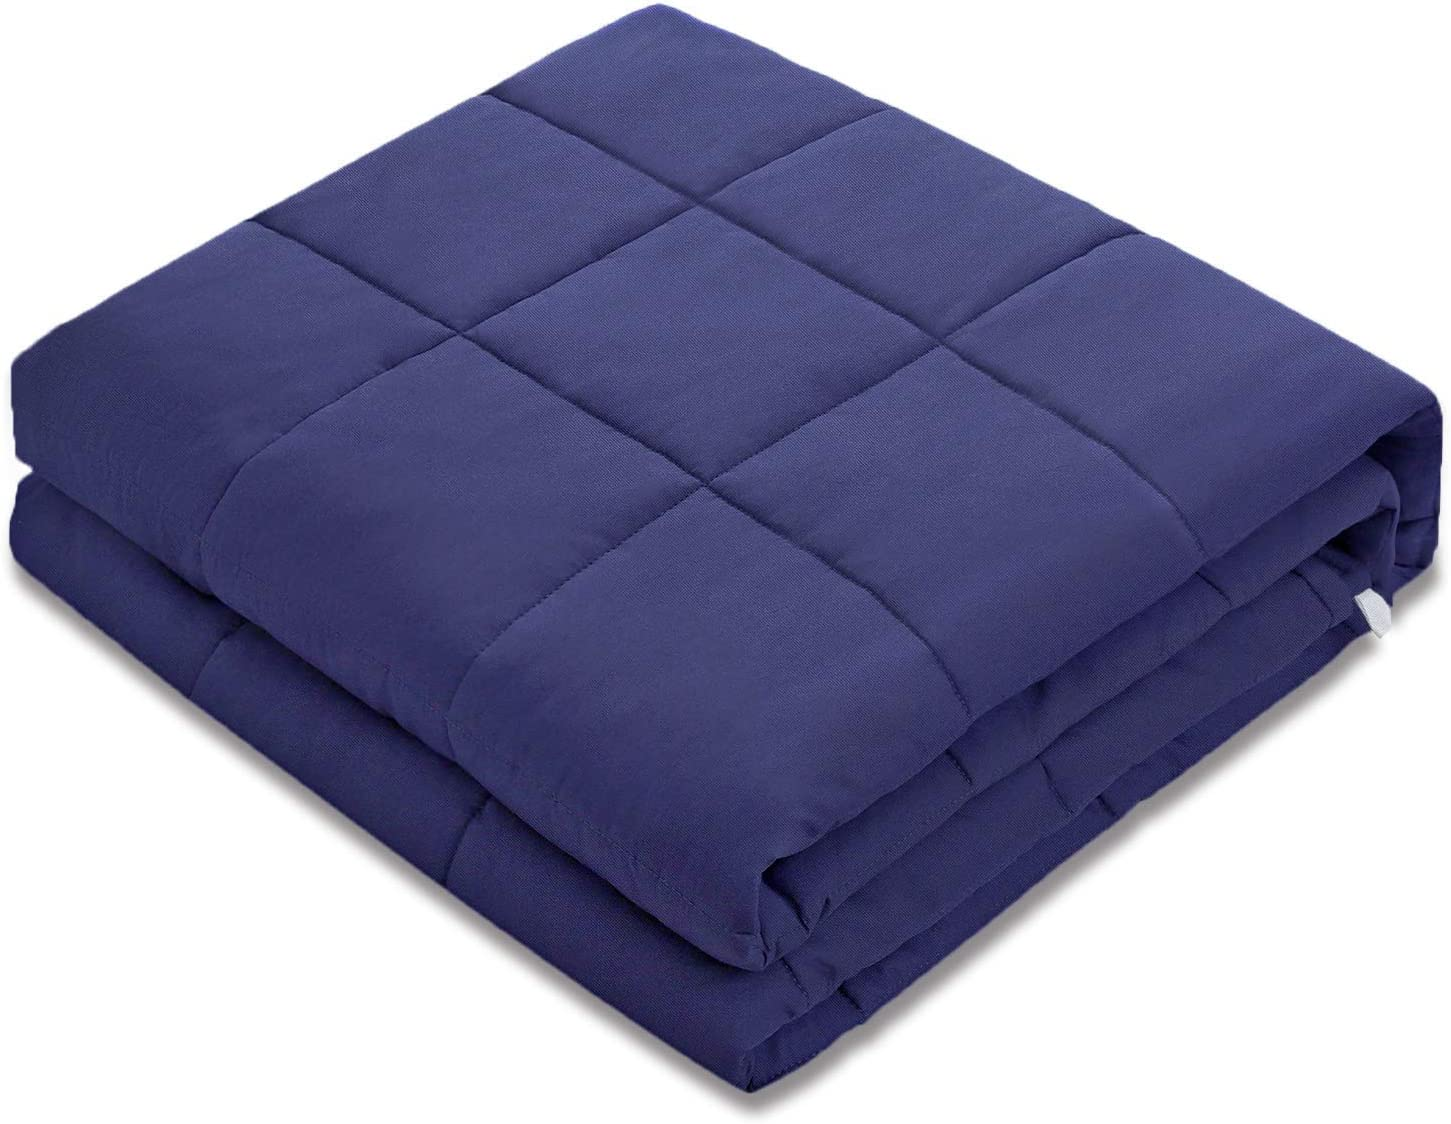 Amy Garden 7 Layers Breathable 100% Cotton Preminum Weighted Blanket (48x72 Inch,15 lbs for 120-180 lbs Individual, Navy) | 2.0 Adults Heavy Blanket